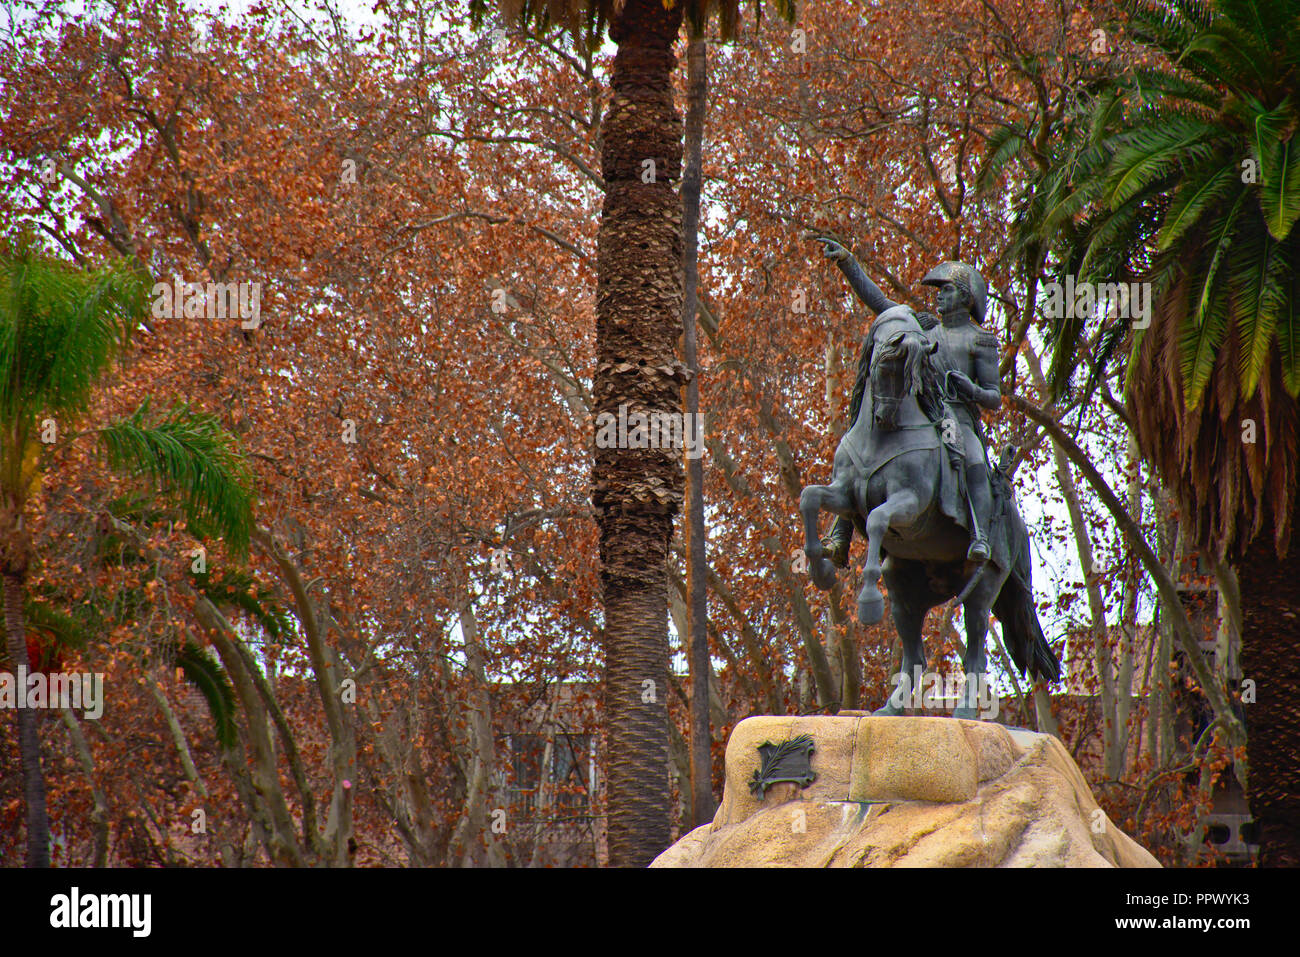 Statue of the General San Martín at Plaza San Martín in Mendoza - Argentina - Stock Image